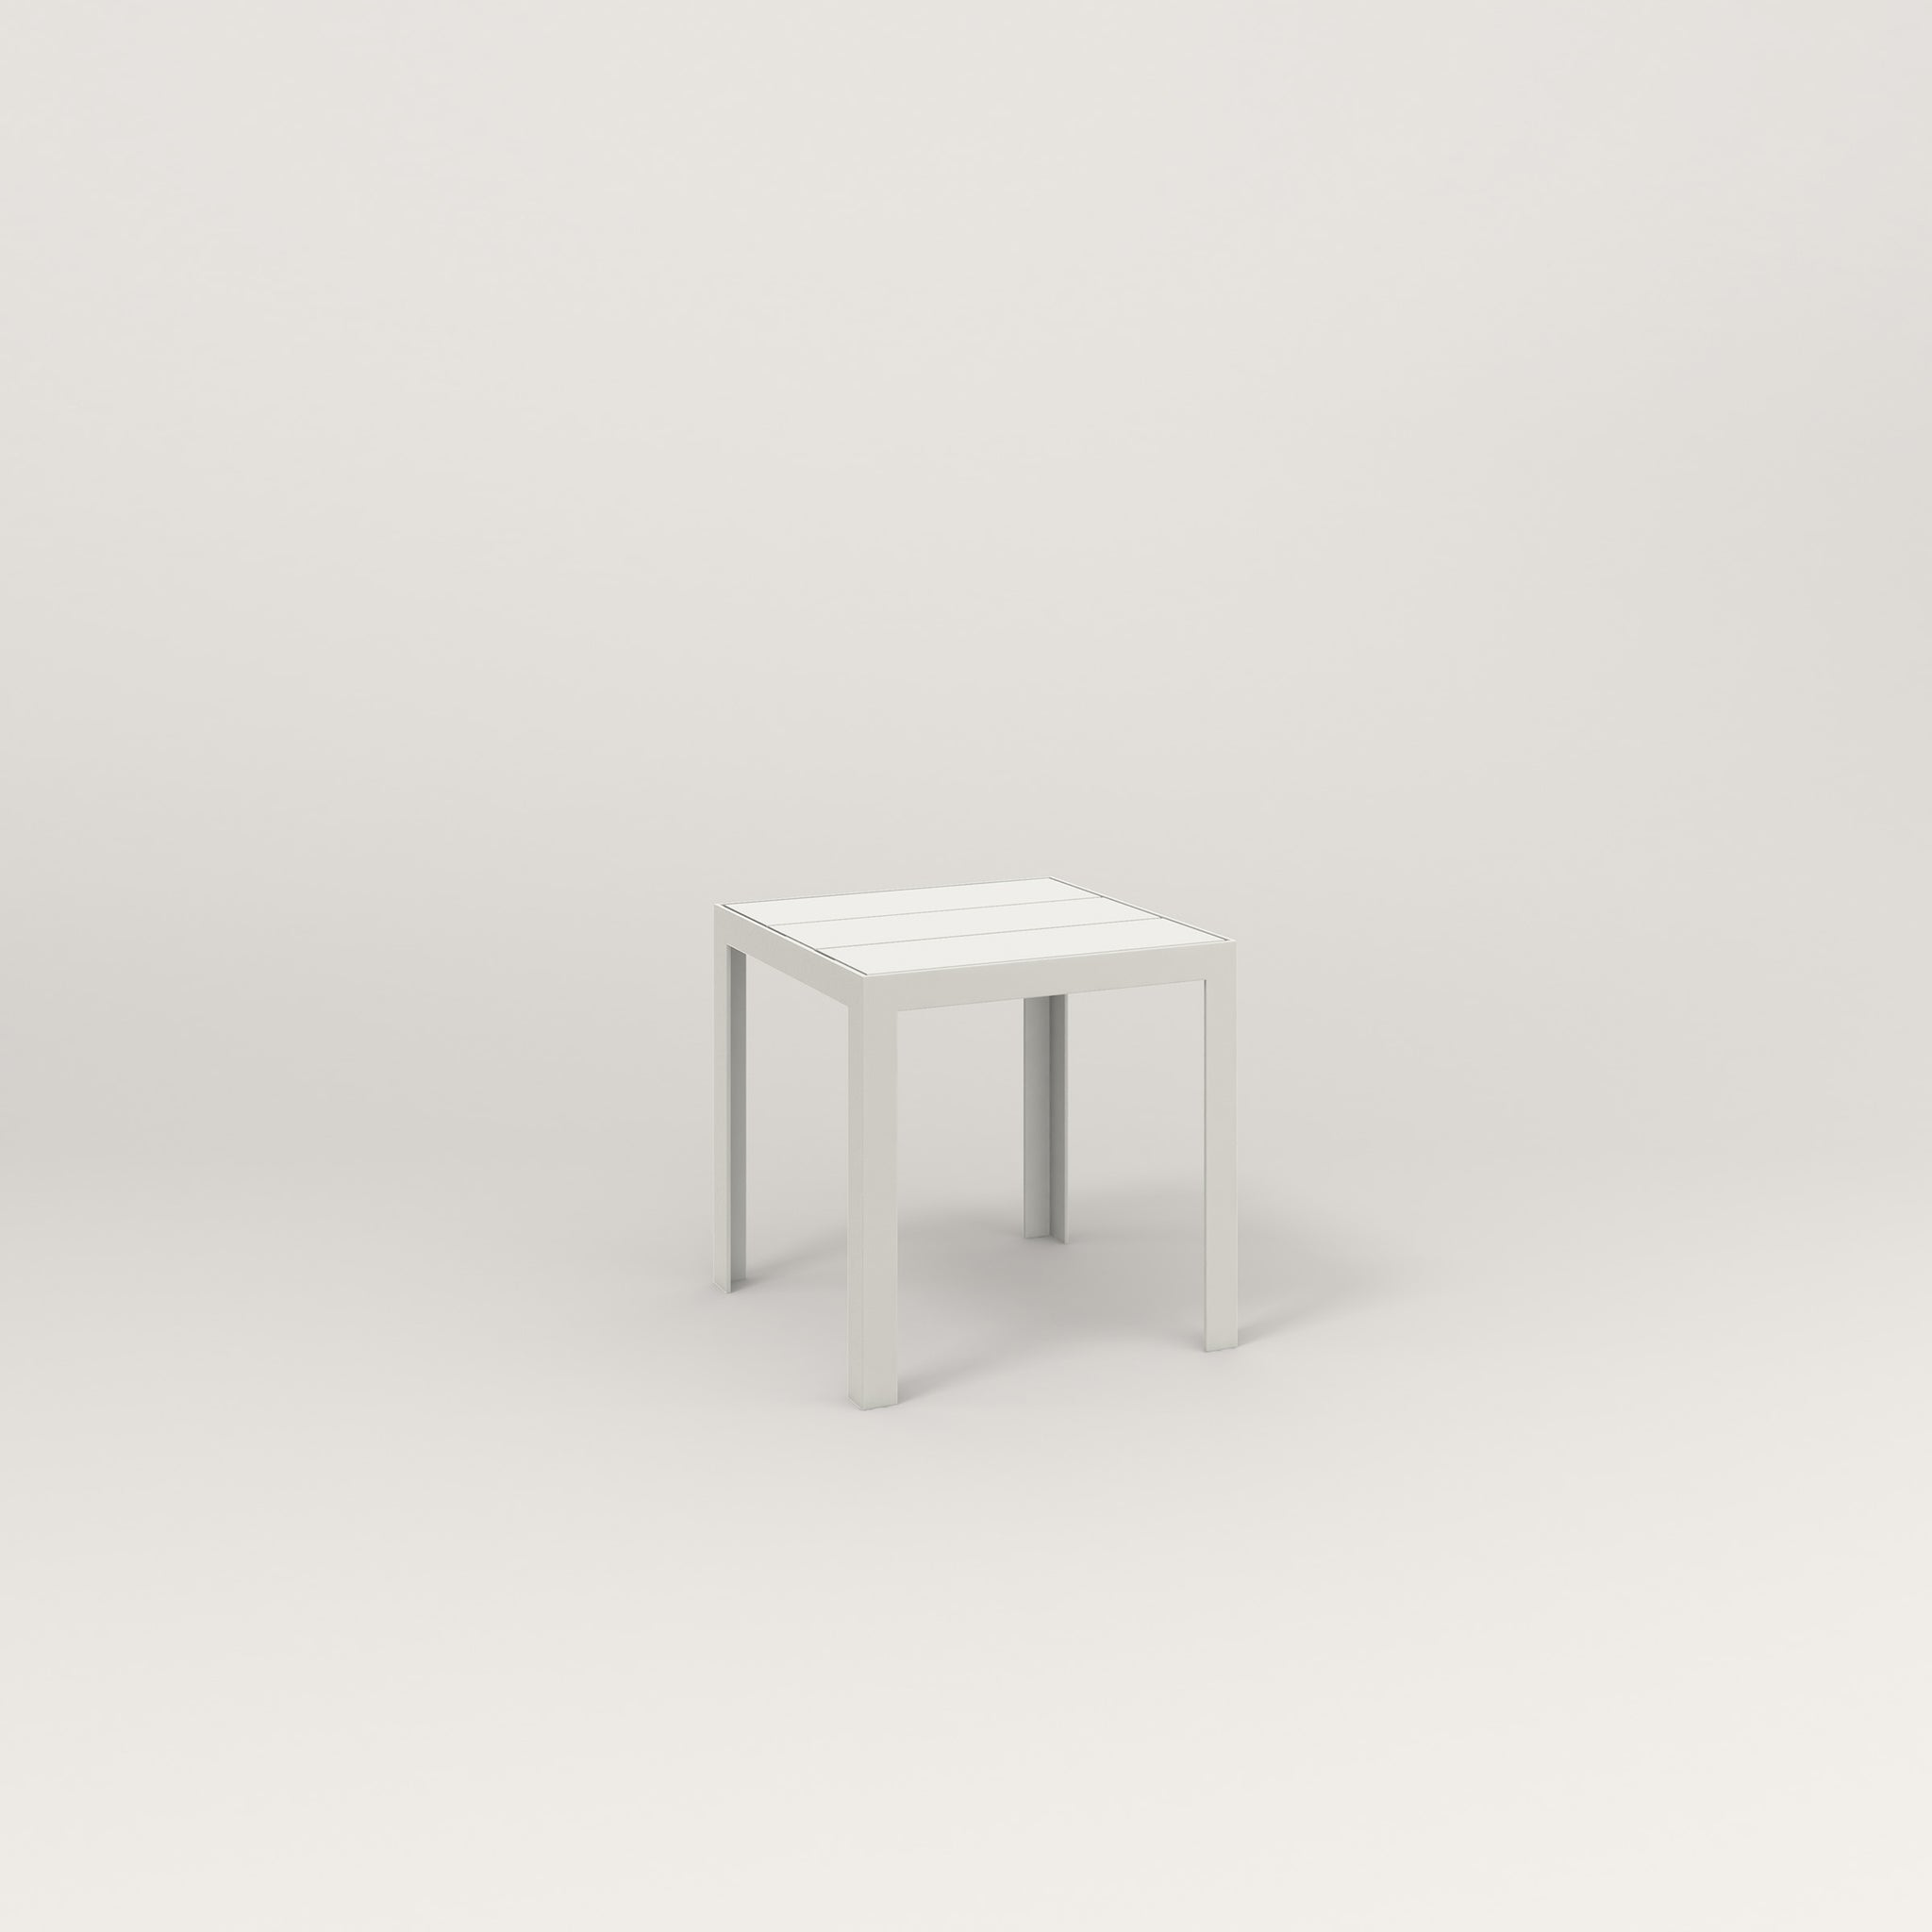 RAD Signature Simple Stool Slatted Steel in white powder coat.